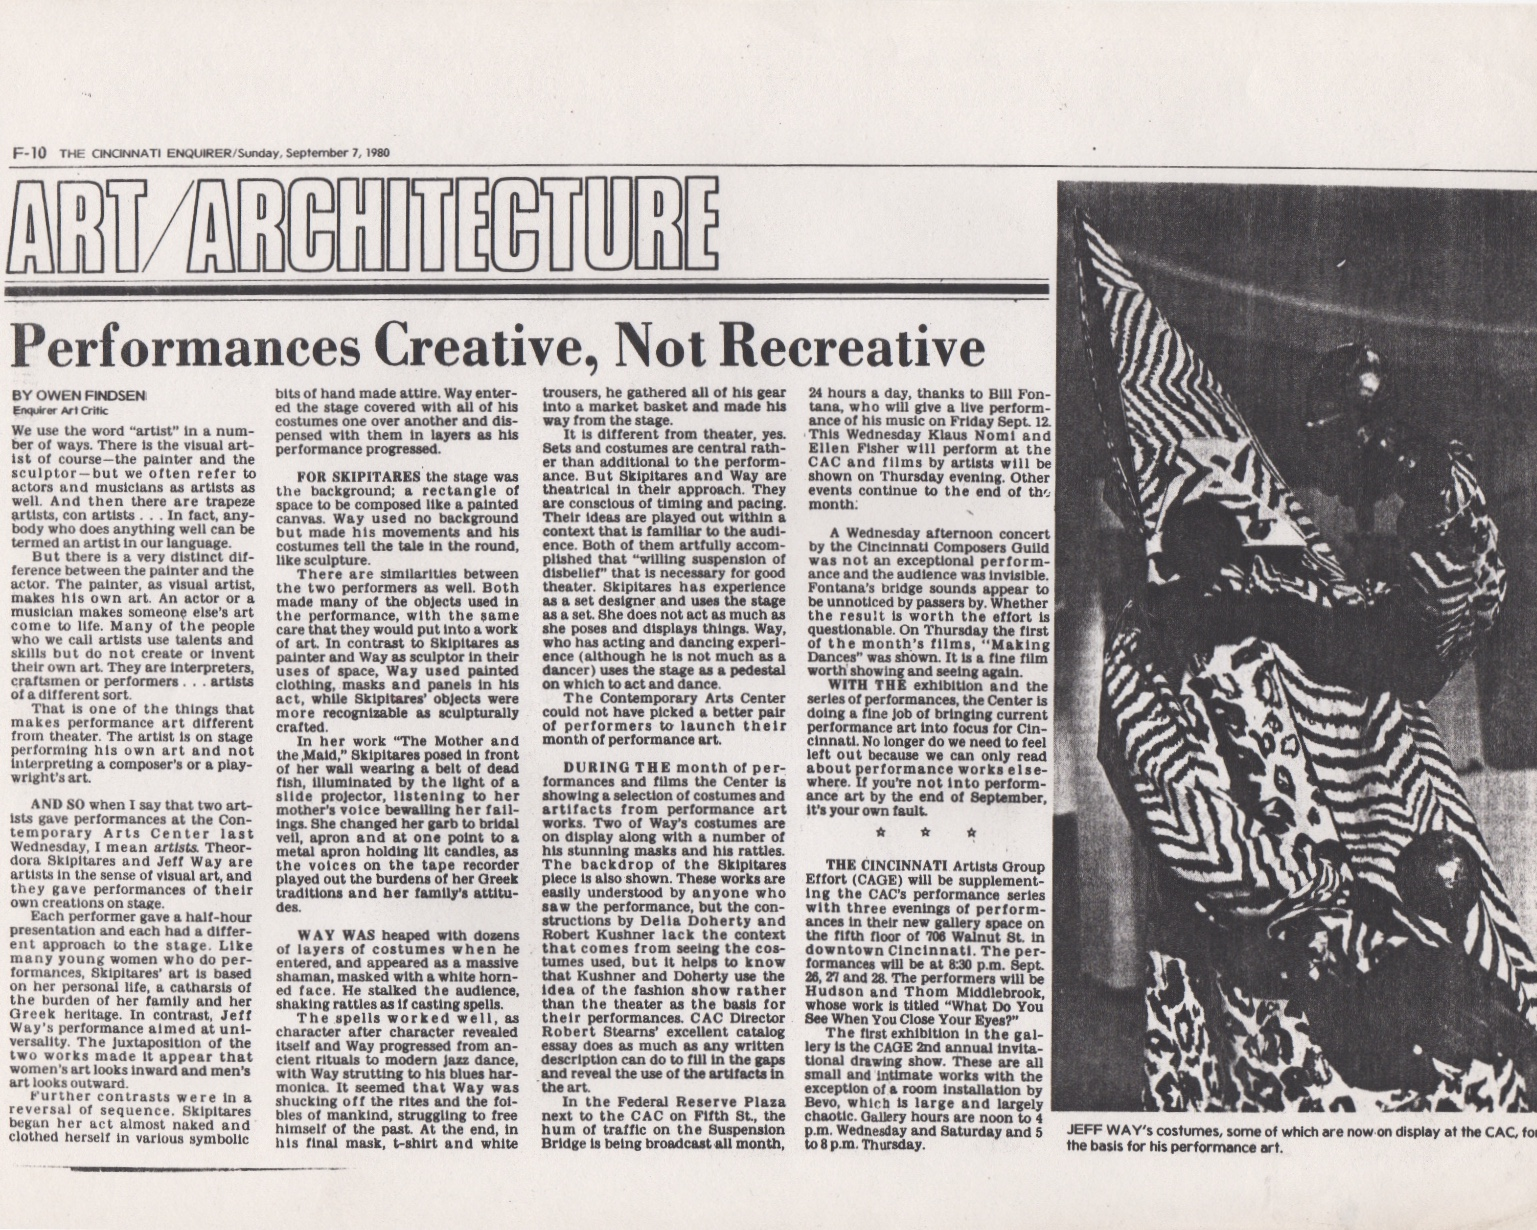 Performances Creative, Not Recreative, Findsen Owen, Cincinati Enquirer, September 1980